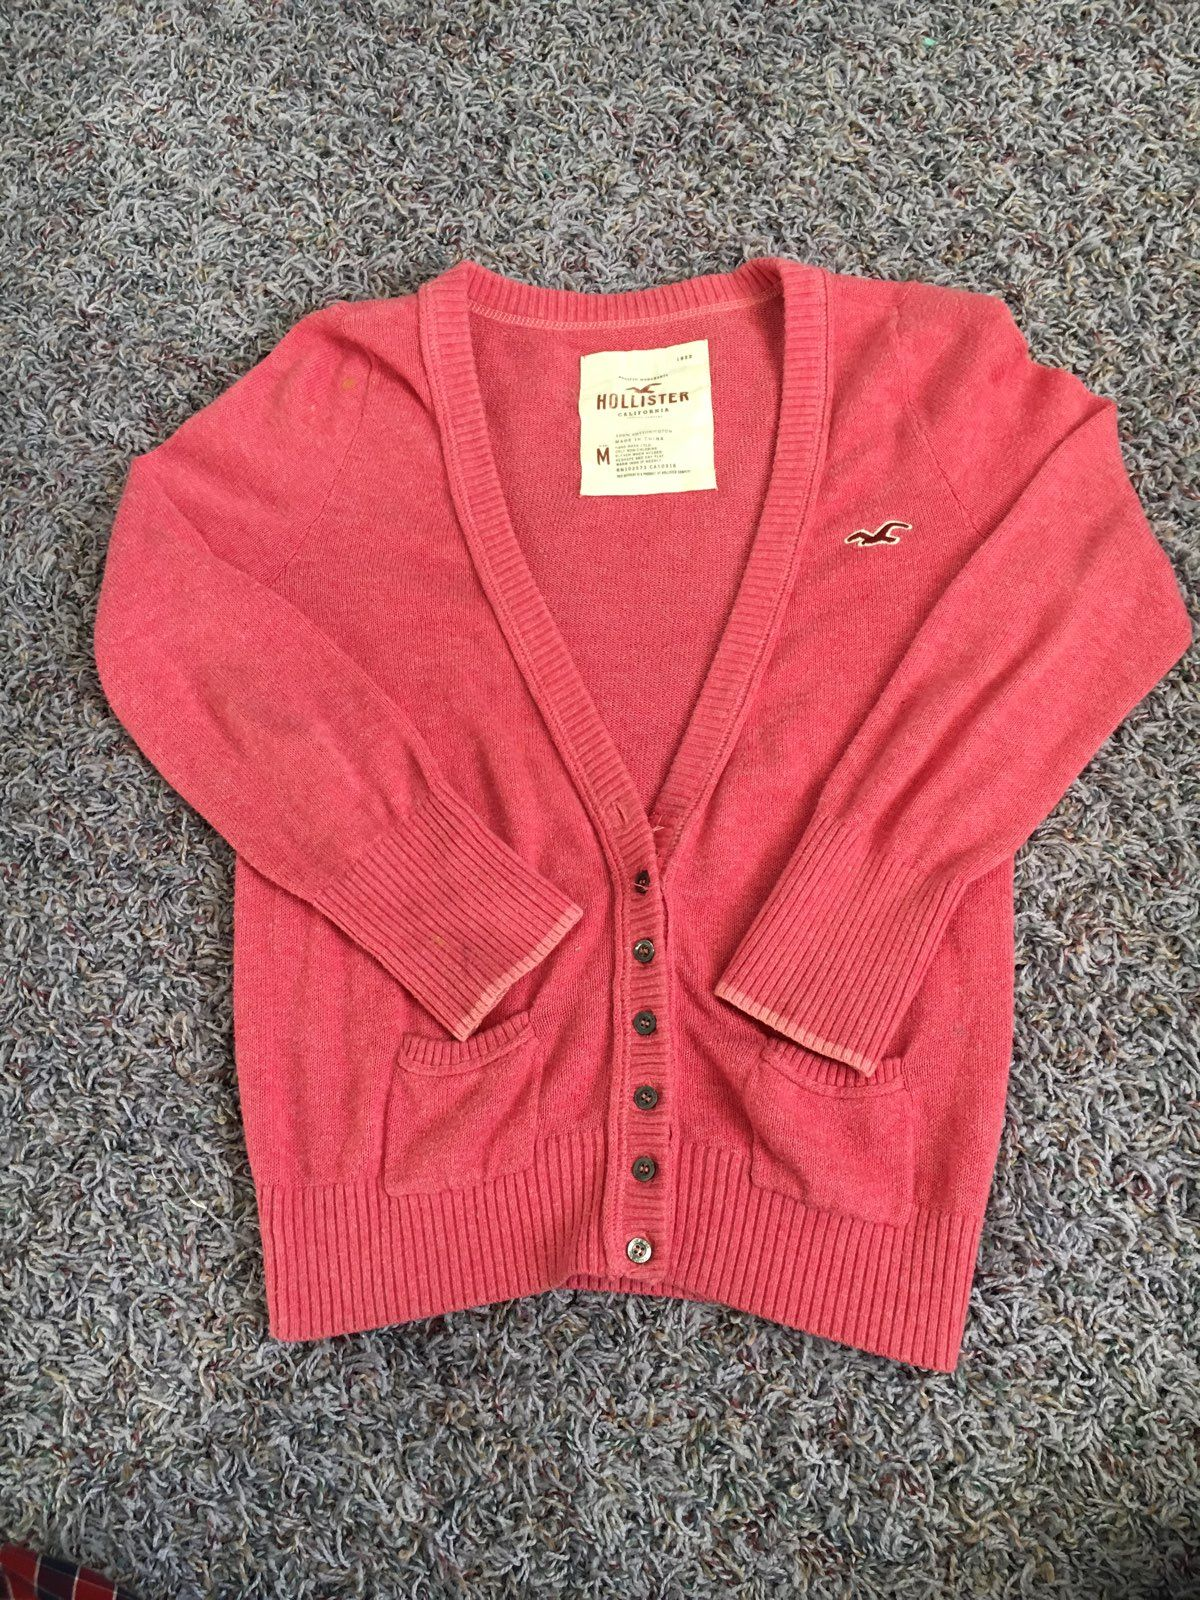 Hollister Pink Sweater - Mercari: BUY & SELL THINGS YOU LOVE